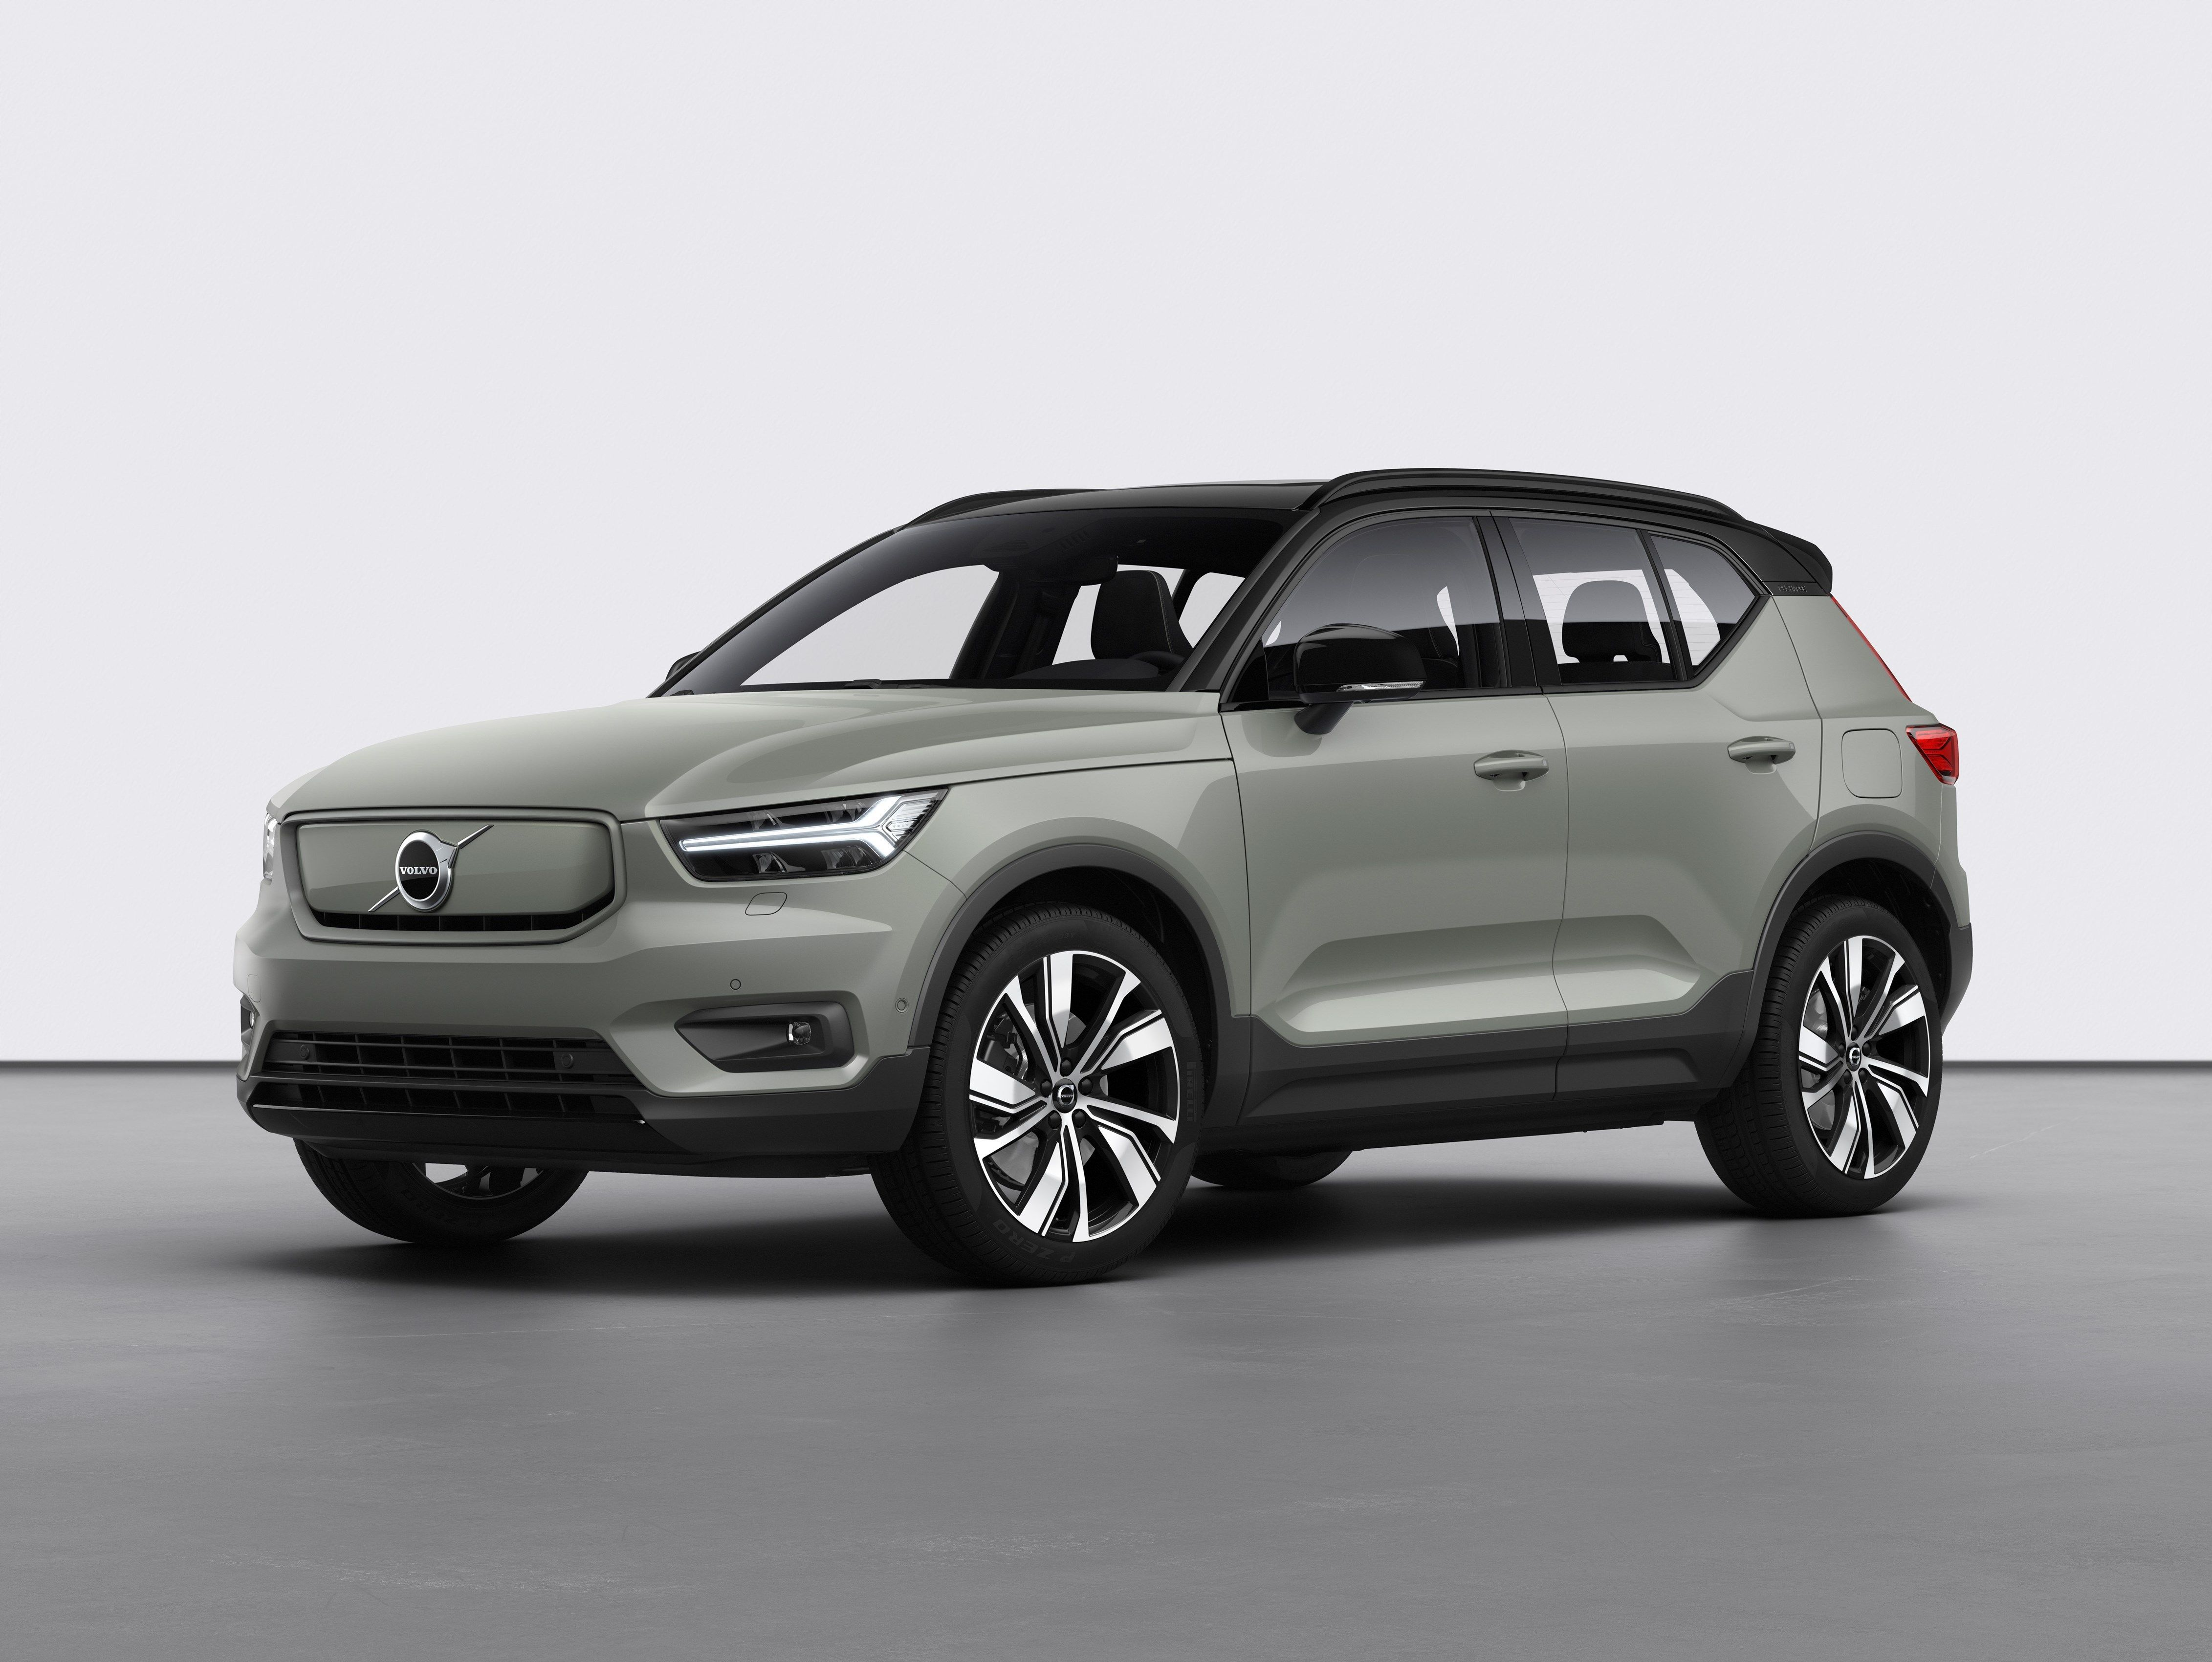 Volvo Xc40 Recharge A 408 Hp Electric Suv Will Be Here In A Year Volvo Electric Cars Electric Car